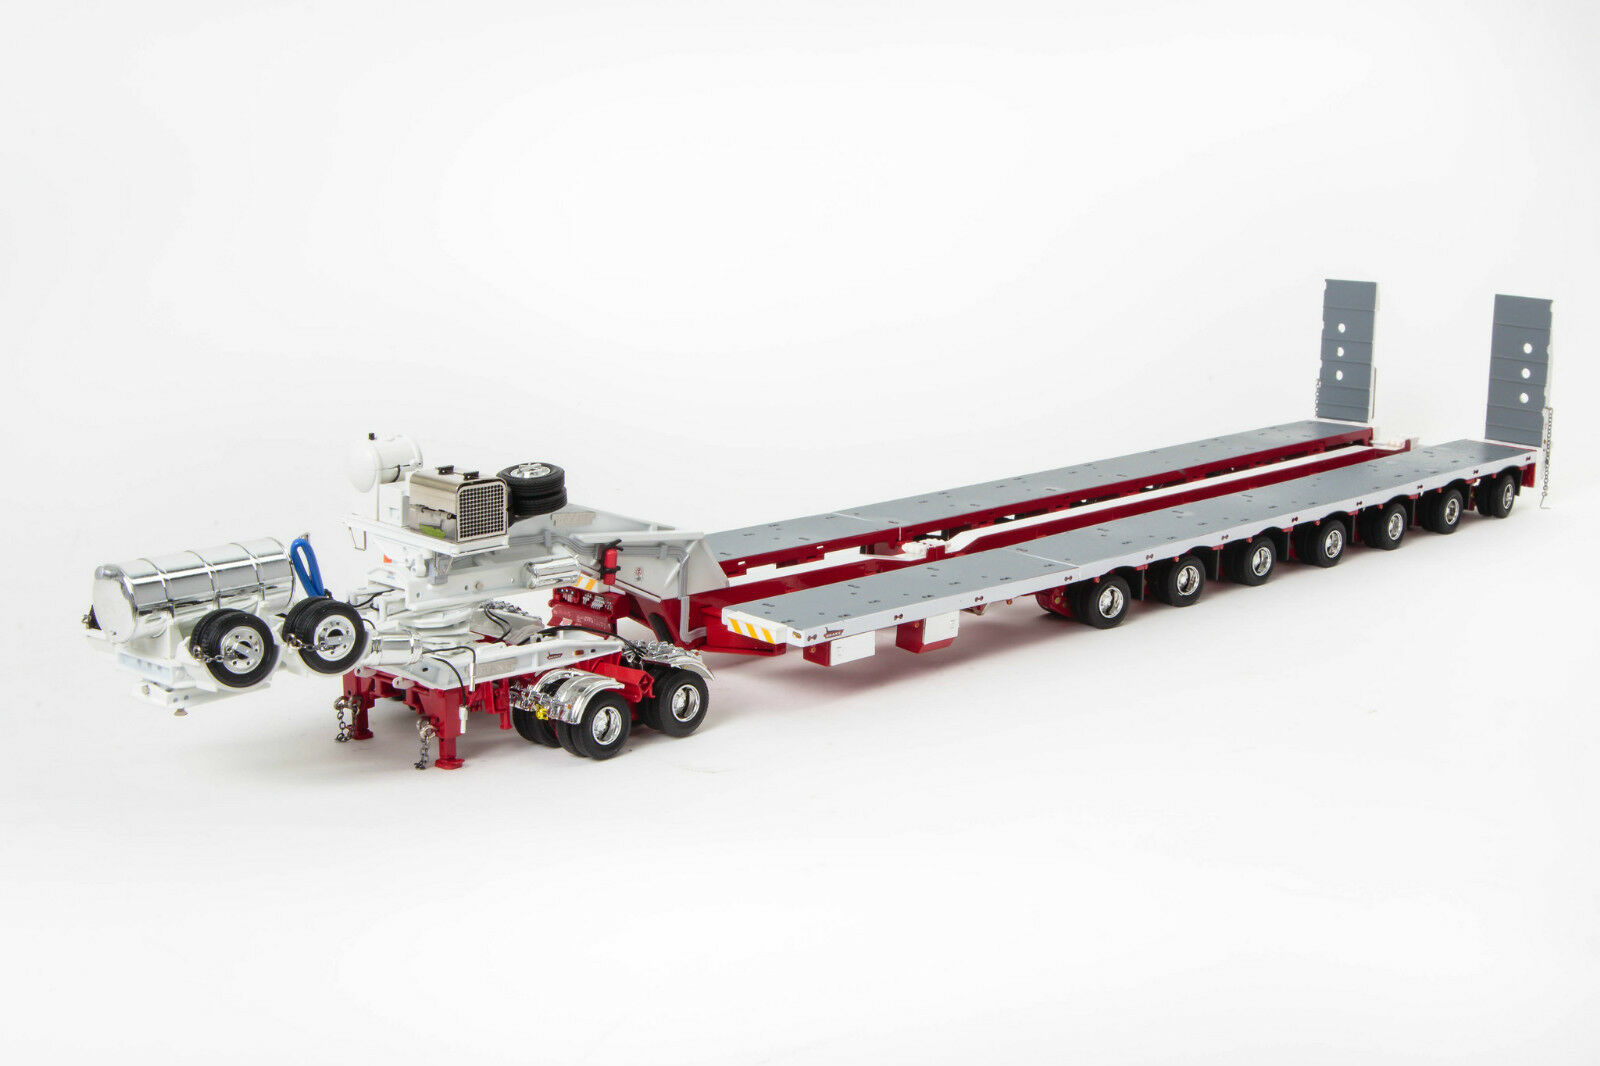 DRAKE 7x8 STEERABLE TRAILER with 2x8 DOLLY - WHITE RED - LATEST RELEASE